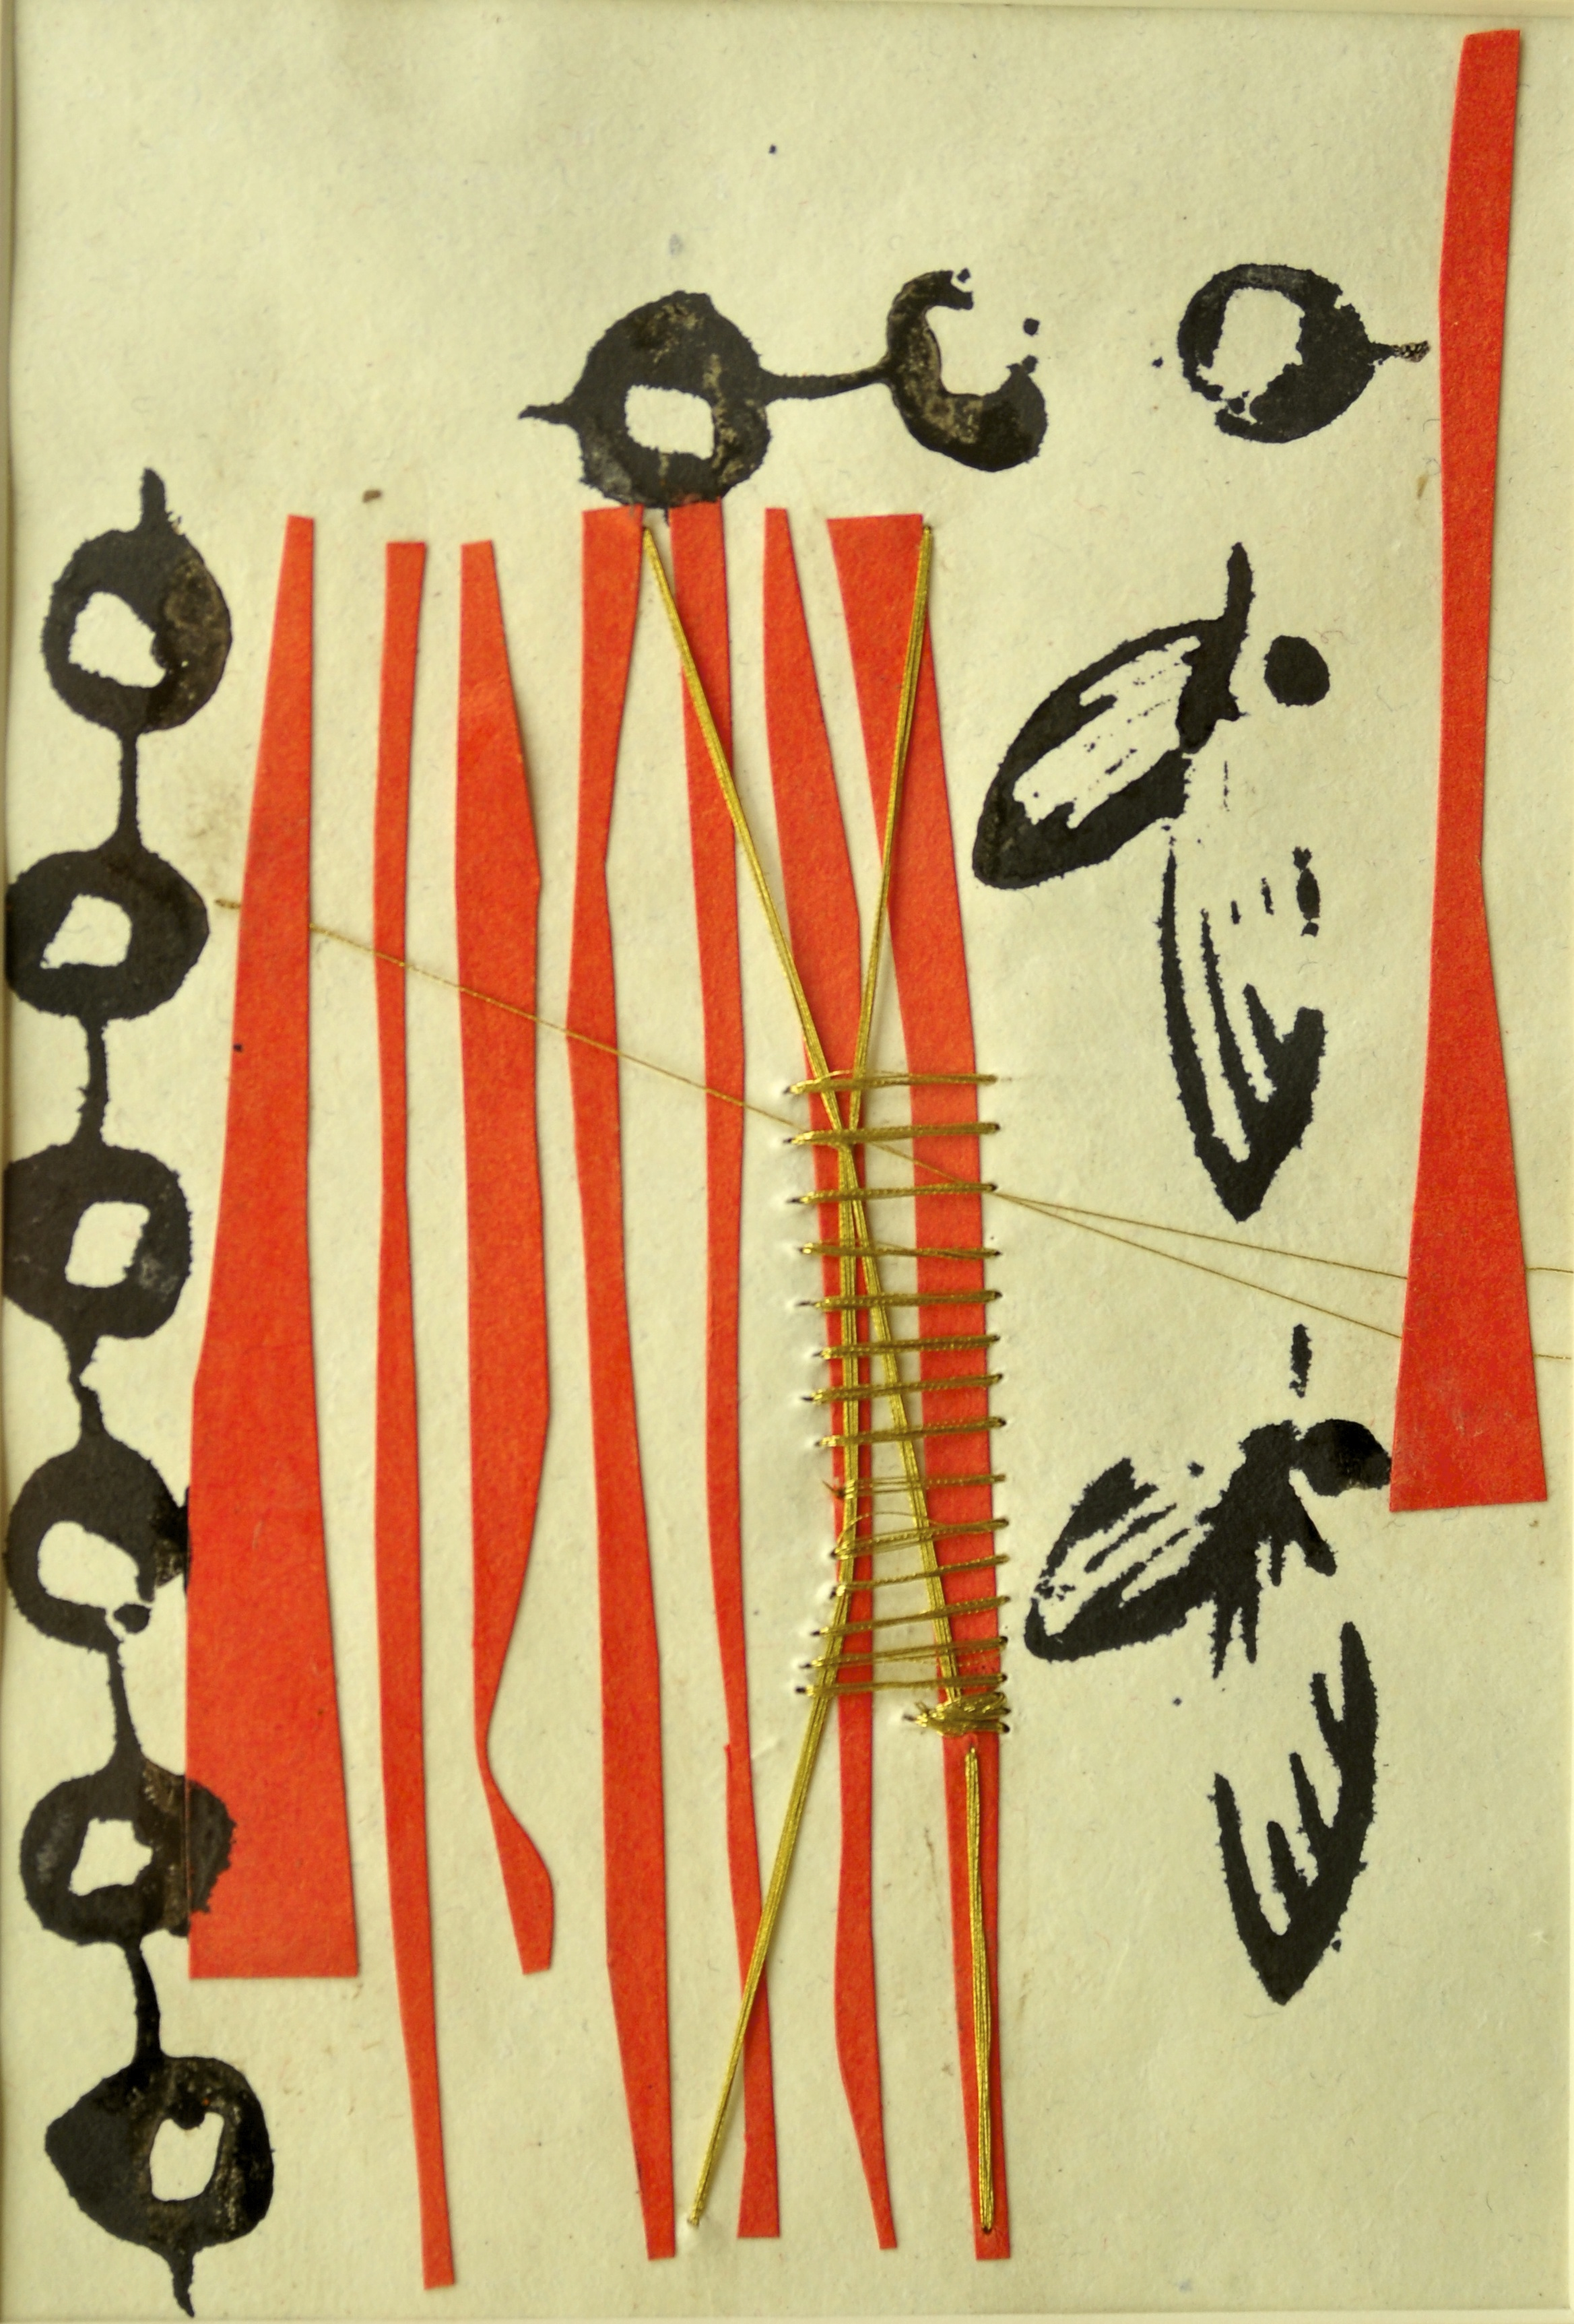 "'Benarsi silk thread and lane', handmade paper (Jaipur), silk thread, block print, collage, 14"" x 6.5"", 2013"